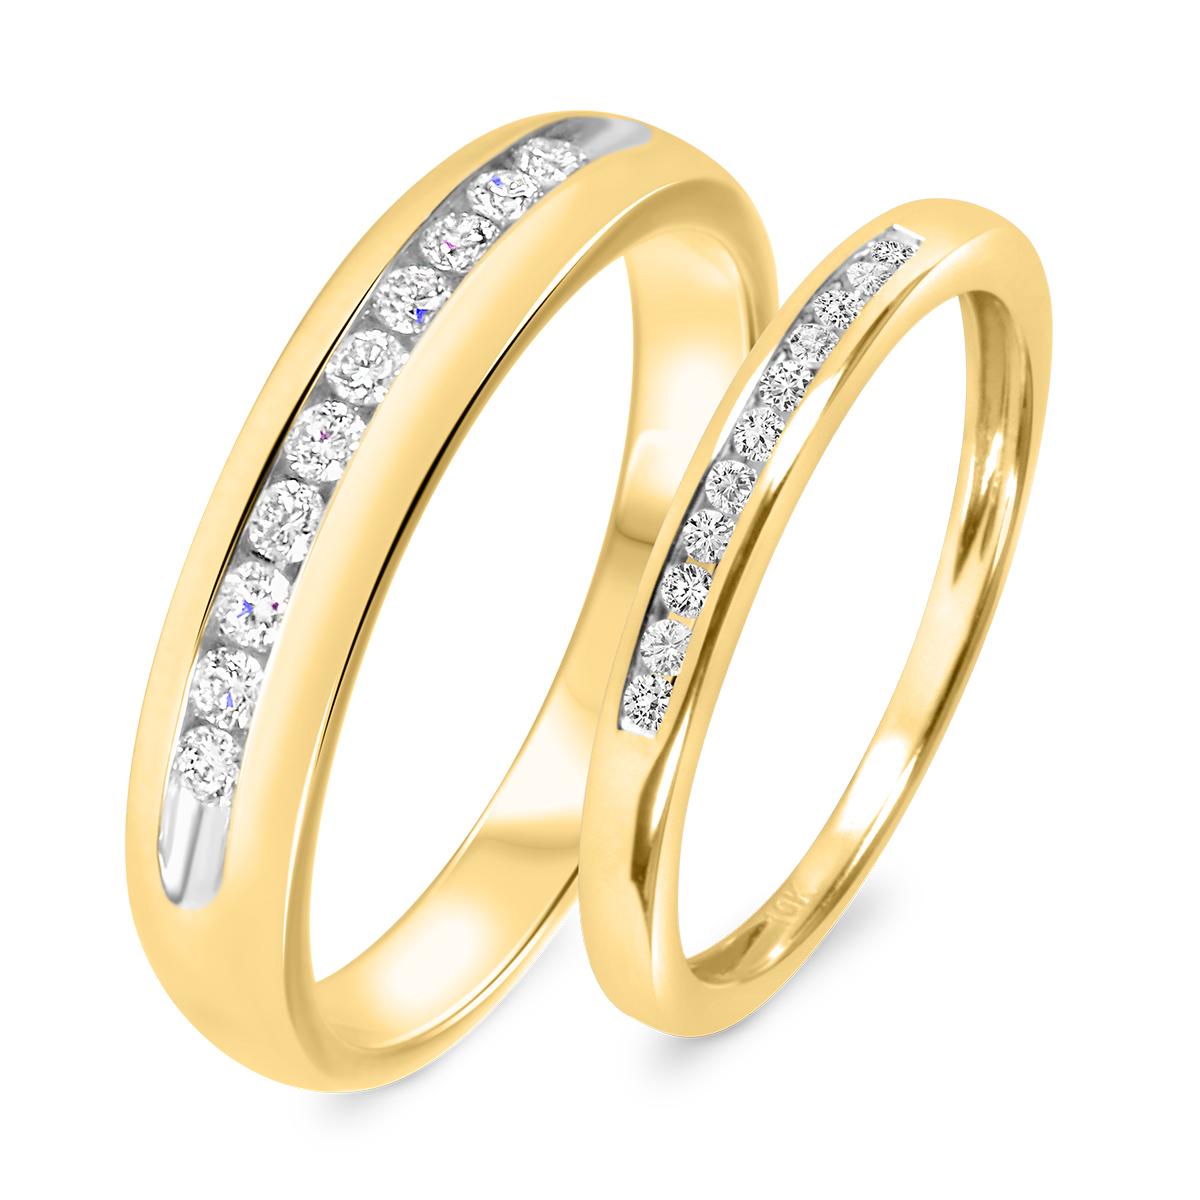 1/3 CT. T.W. Round Cut Diamond His And Hers Wedding Band Set 10K Yellow Gold-